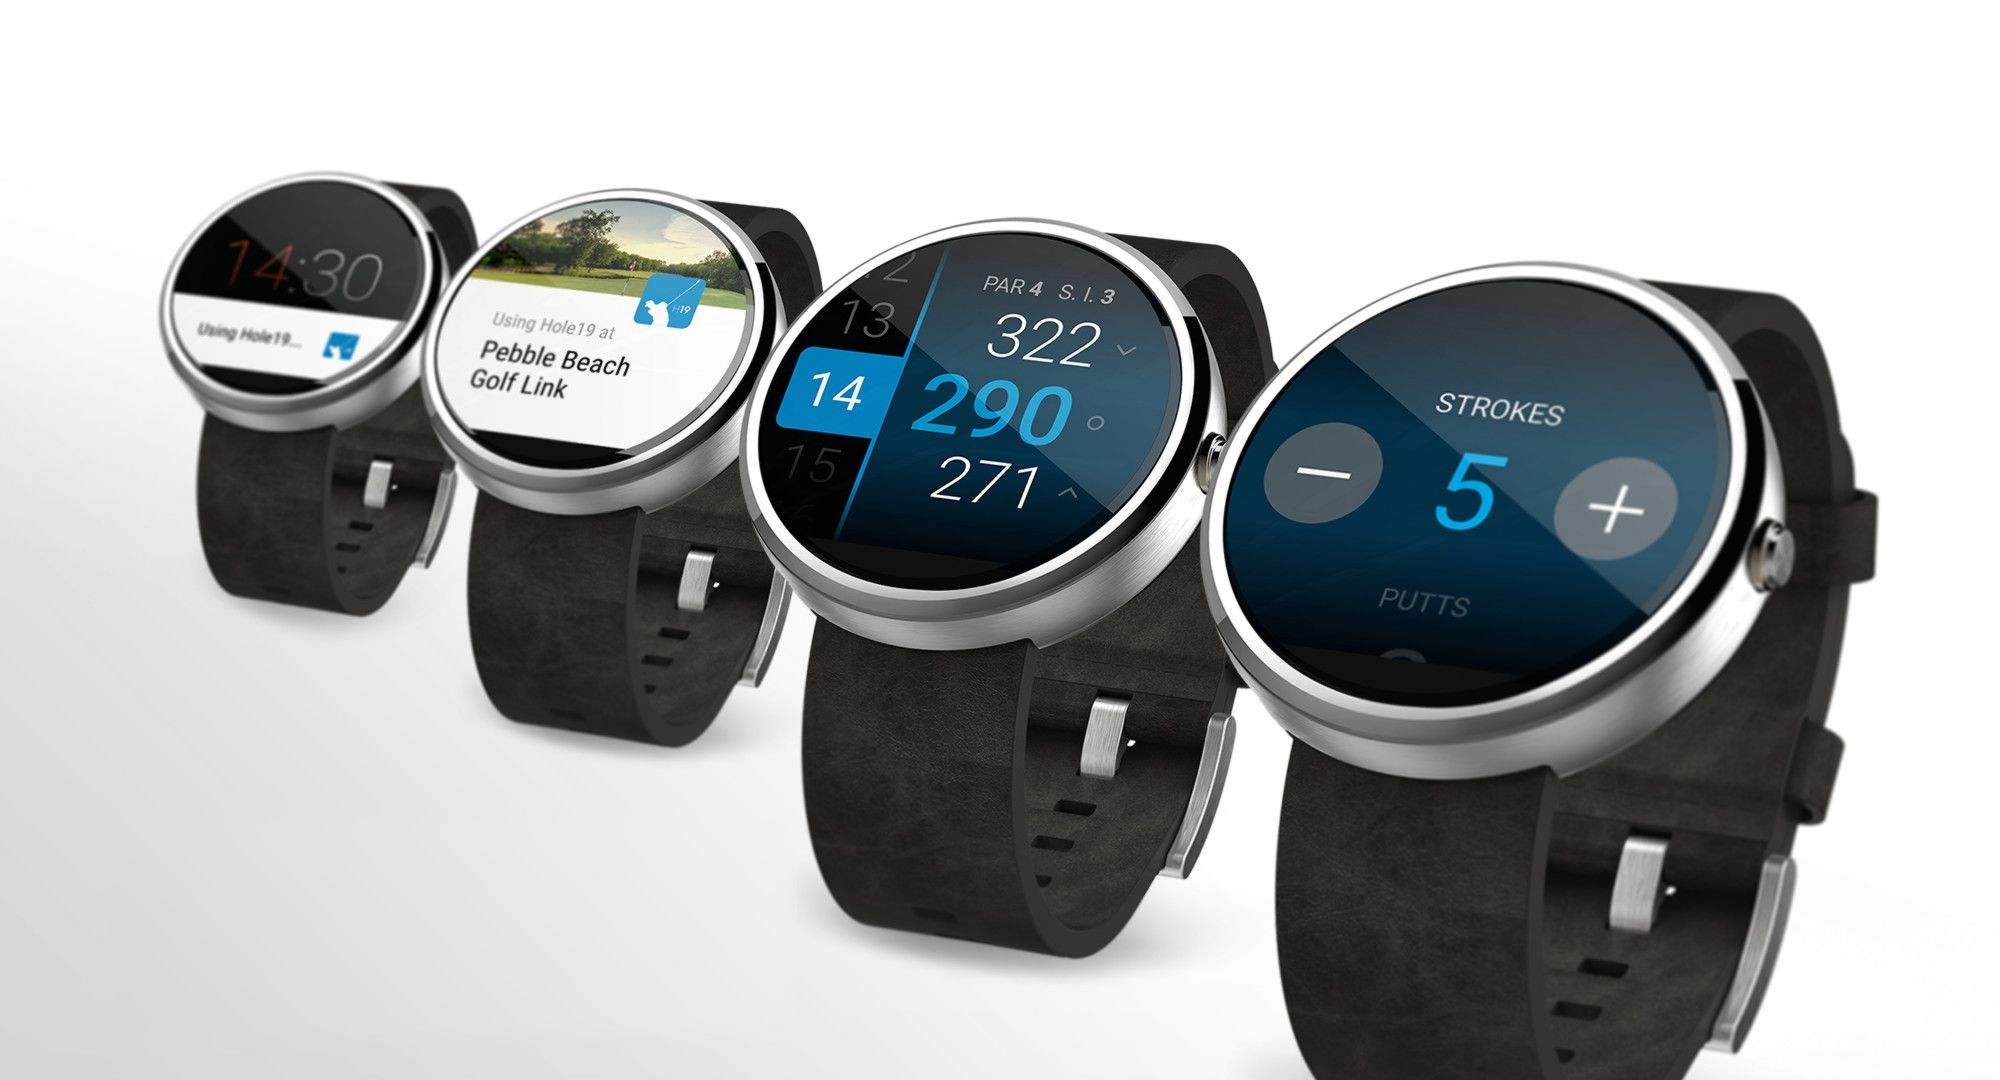 Hole 19 running on rounded screen Android Wear